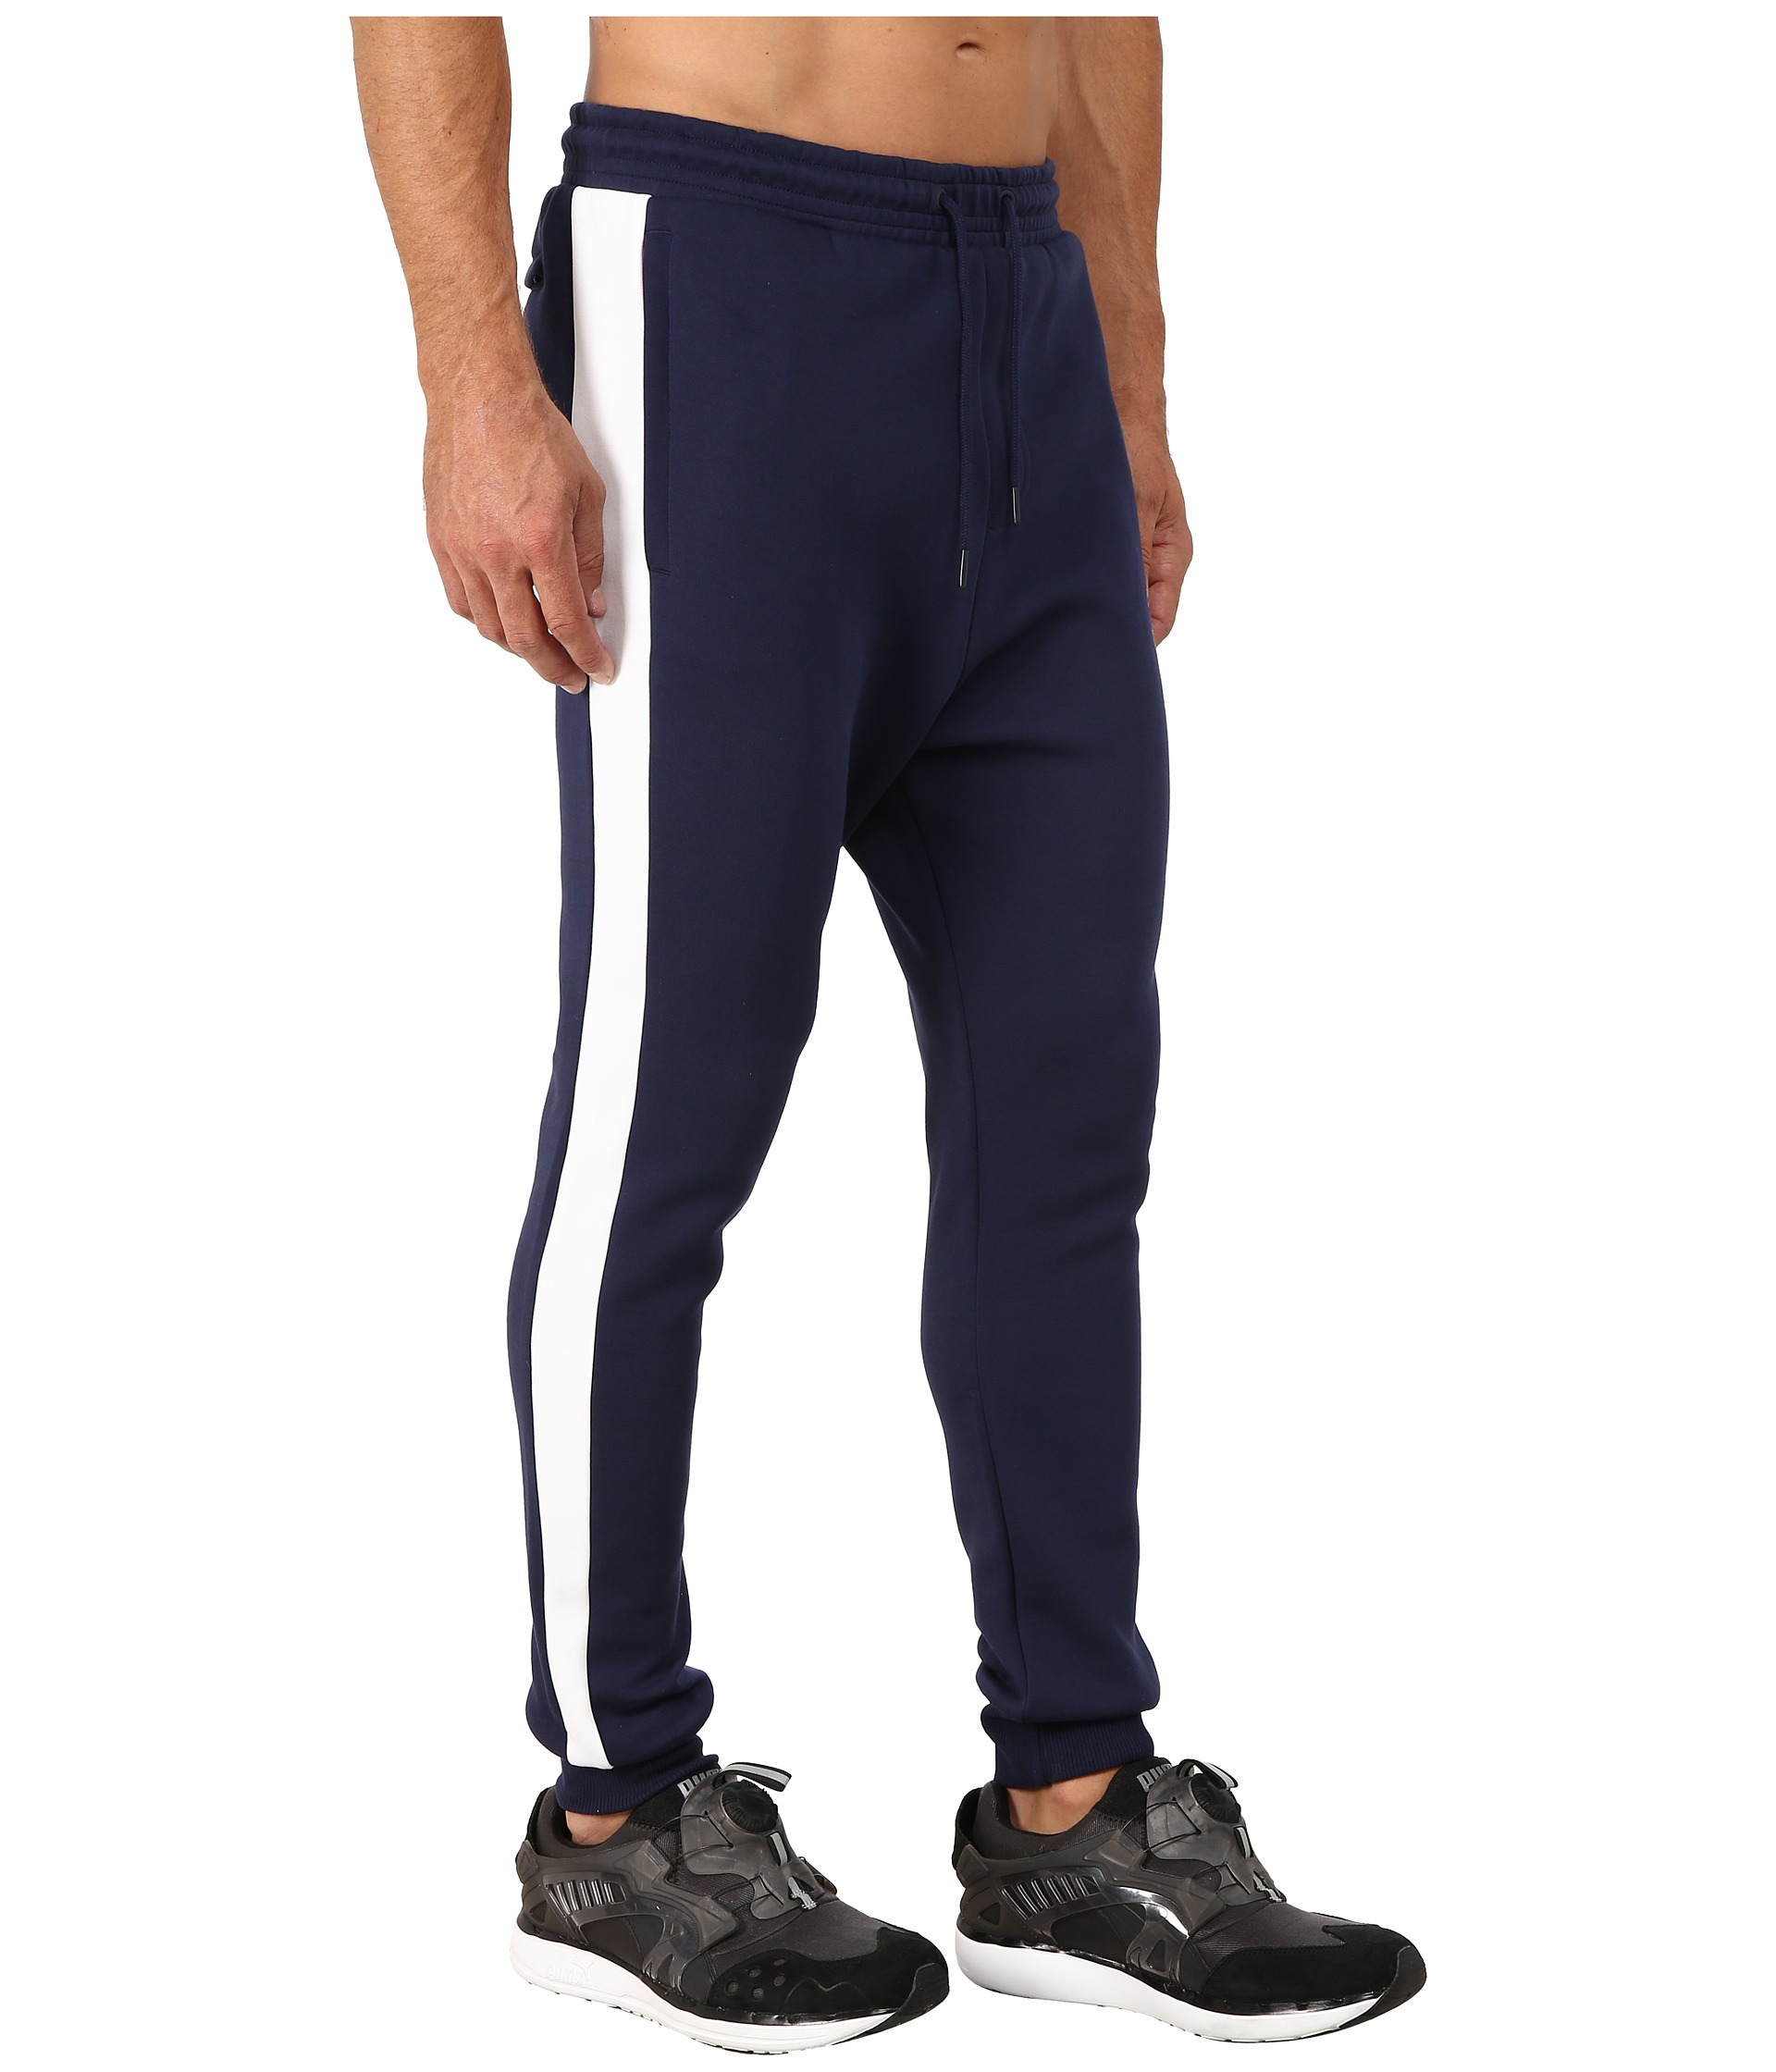 df9b6d836ab4 Lyst - PUMA T7 Track Pant in Blue for Men